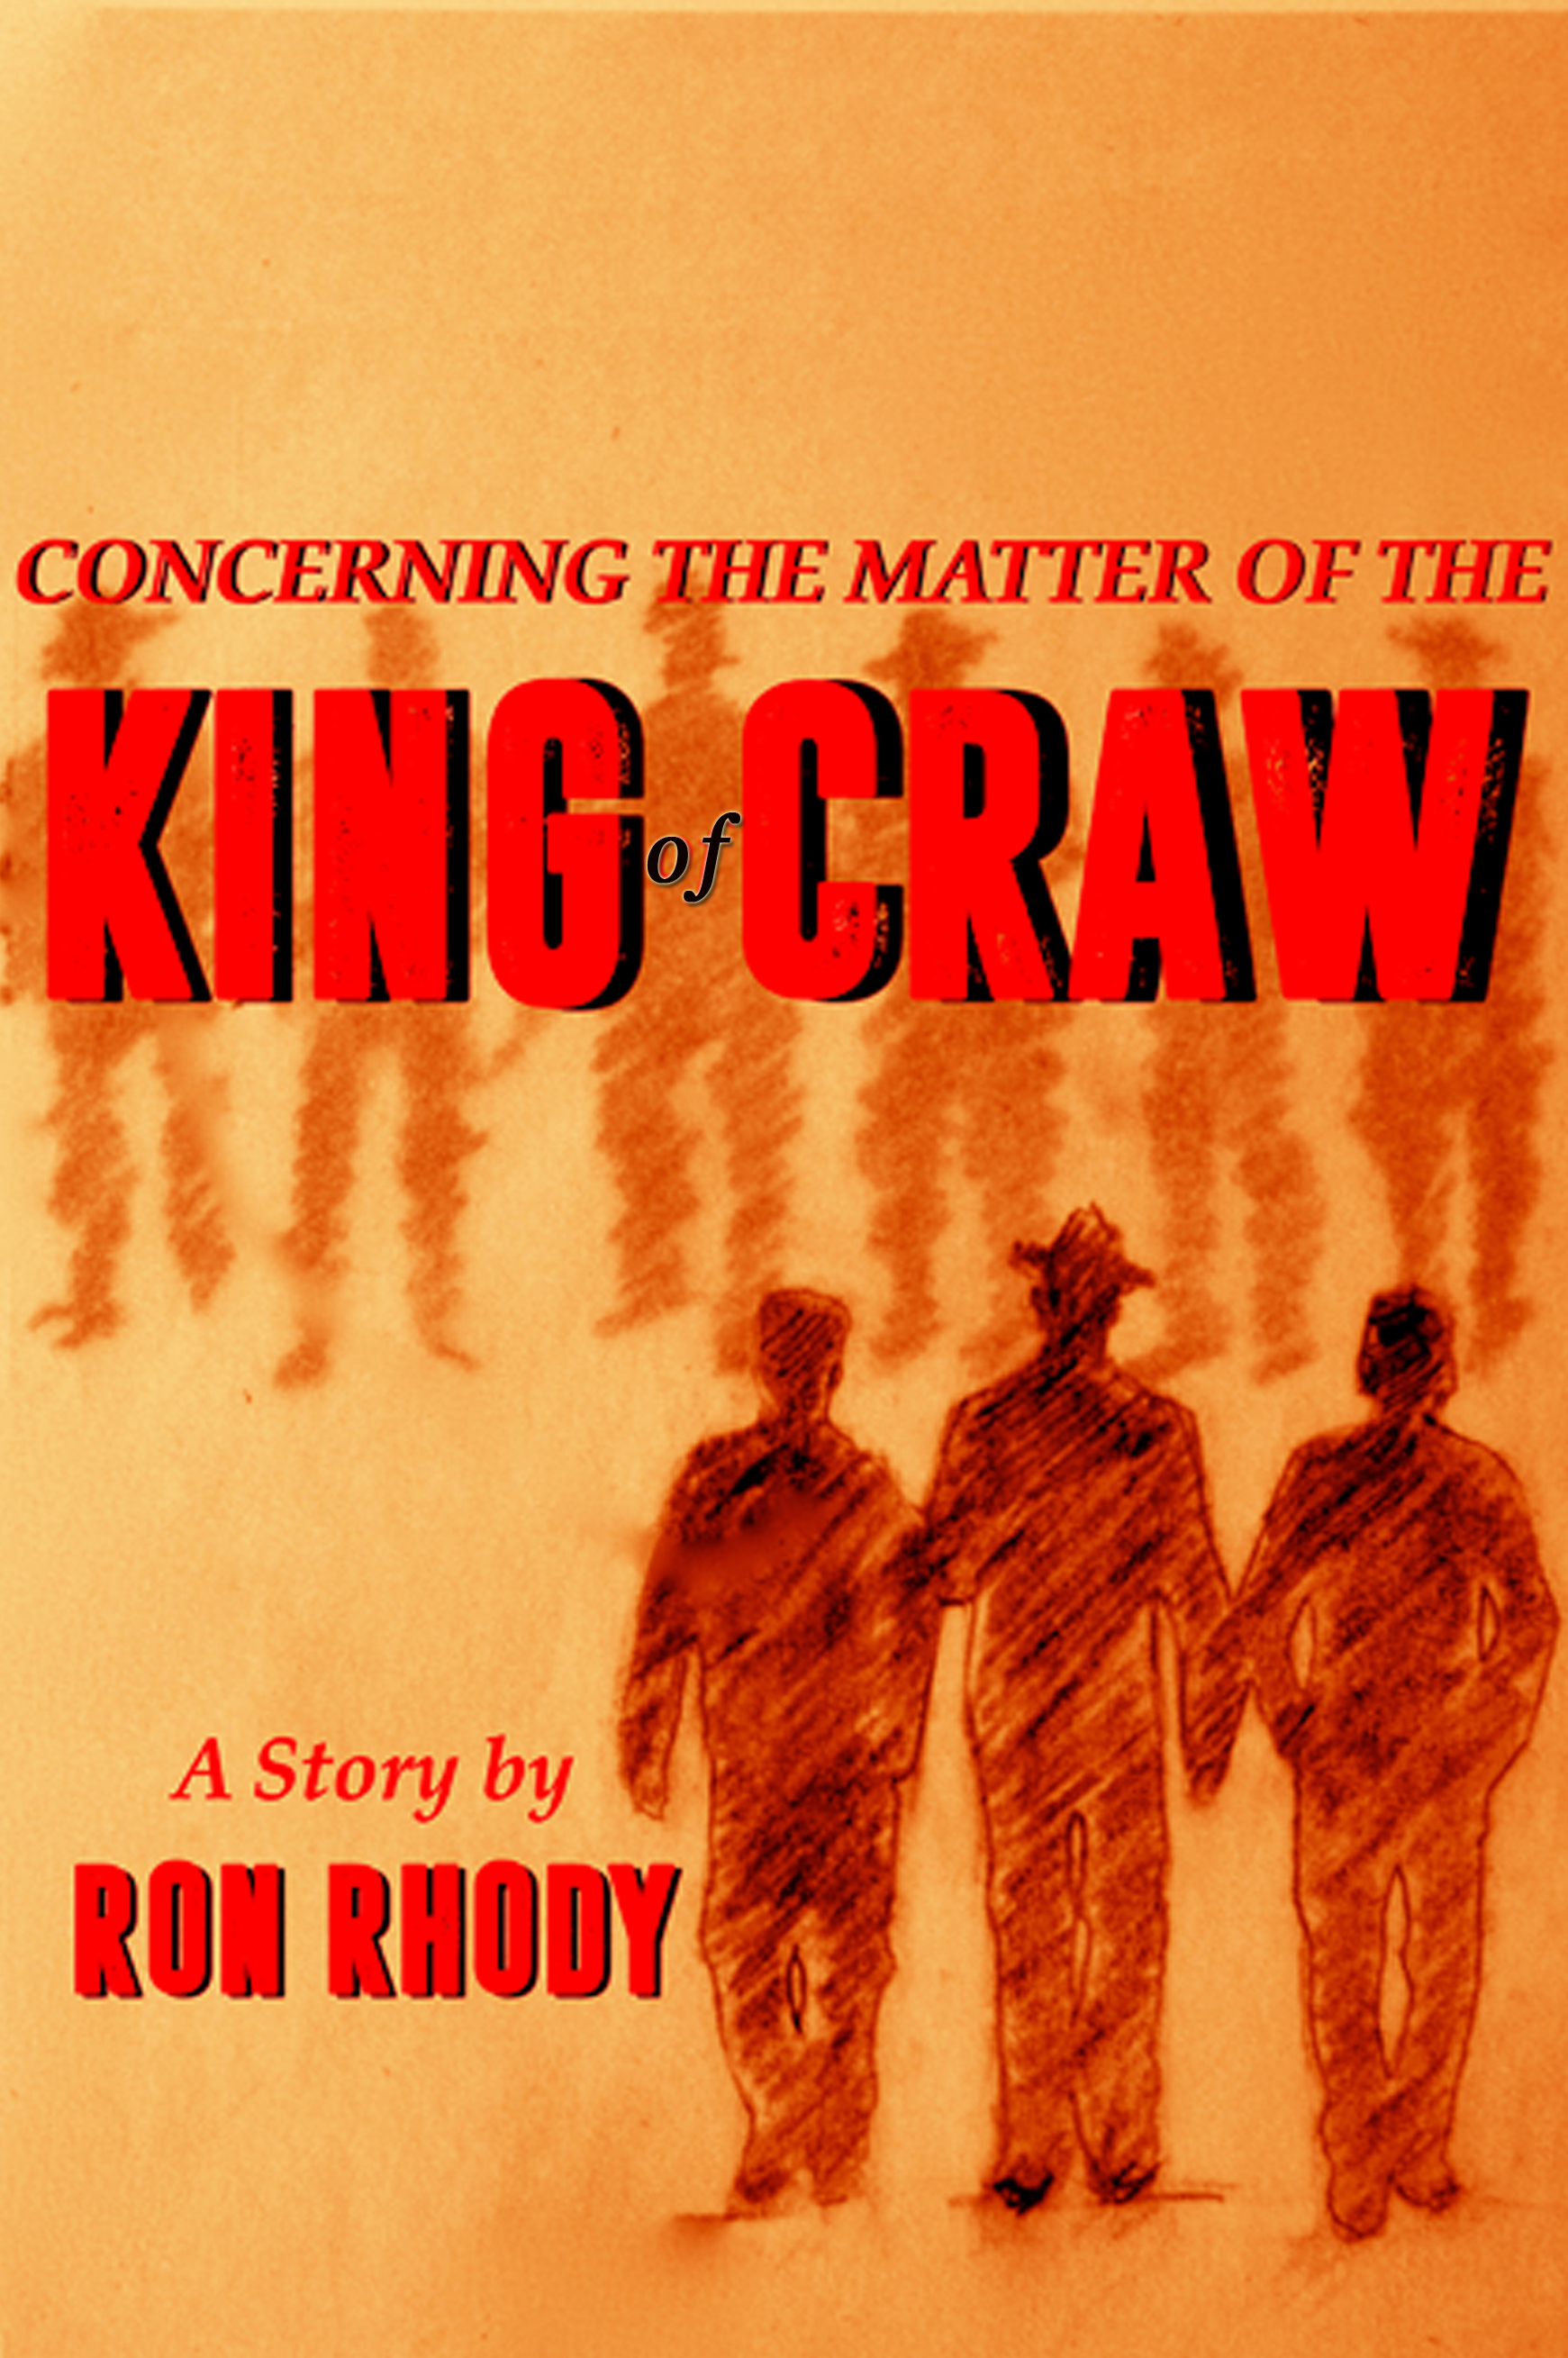 King of Craw by Ron Rhody